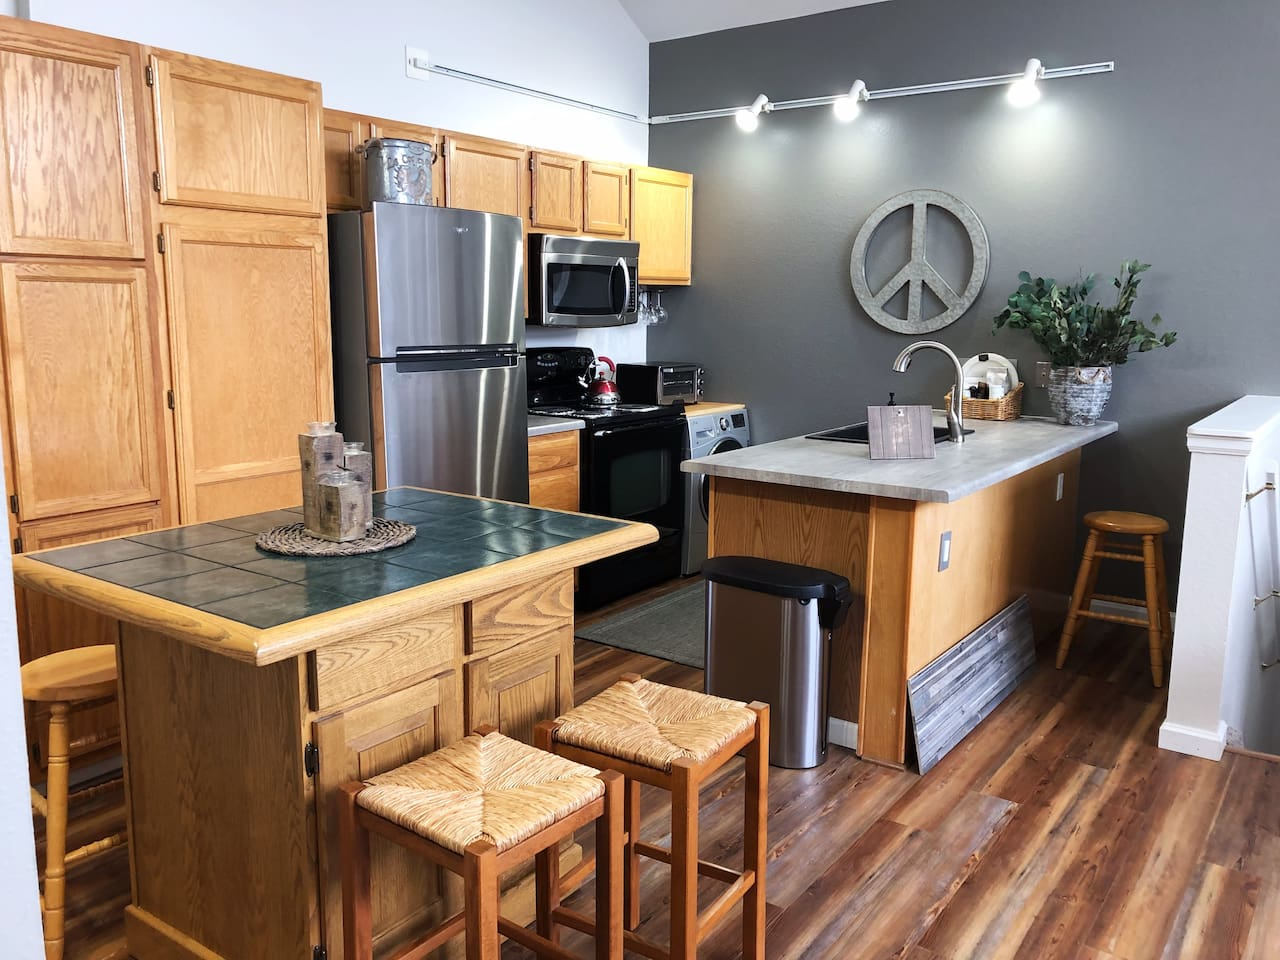 Great open FULLY stocked kitchen, including condiments, spices, coffee, tea  All new appliances, Euro W/D for small laundry needs Side Closet for sleeper sofa guest